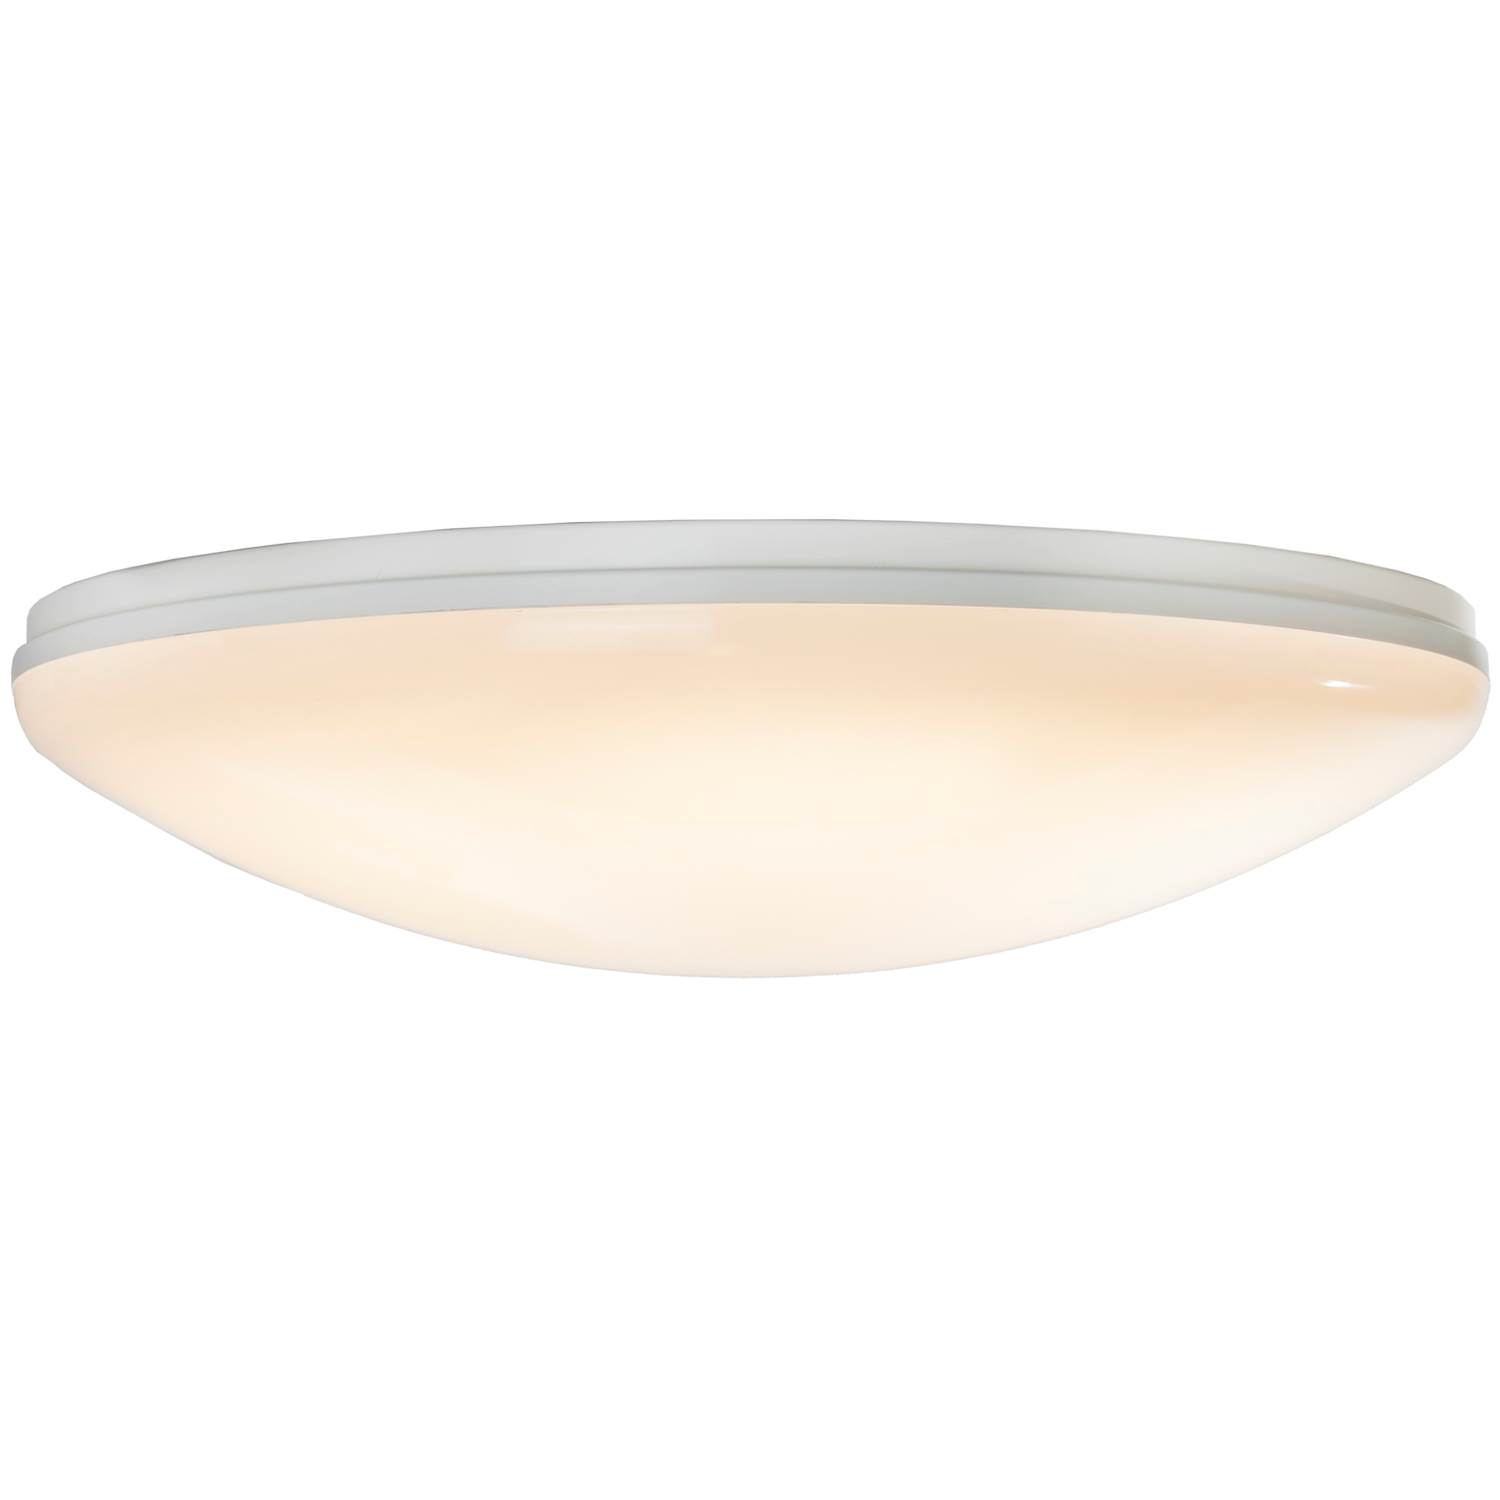 Airam Arex LED plafond Ø400mm